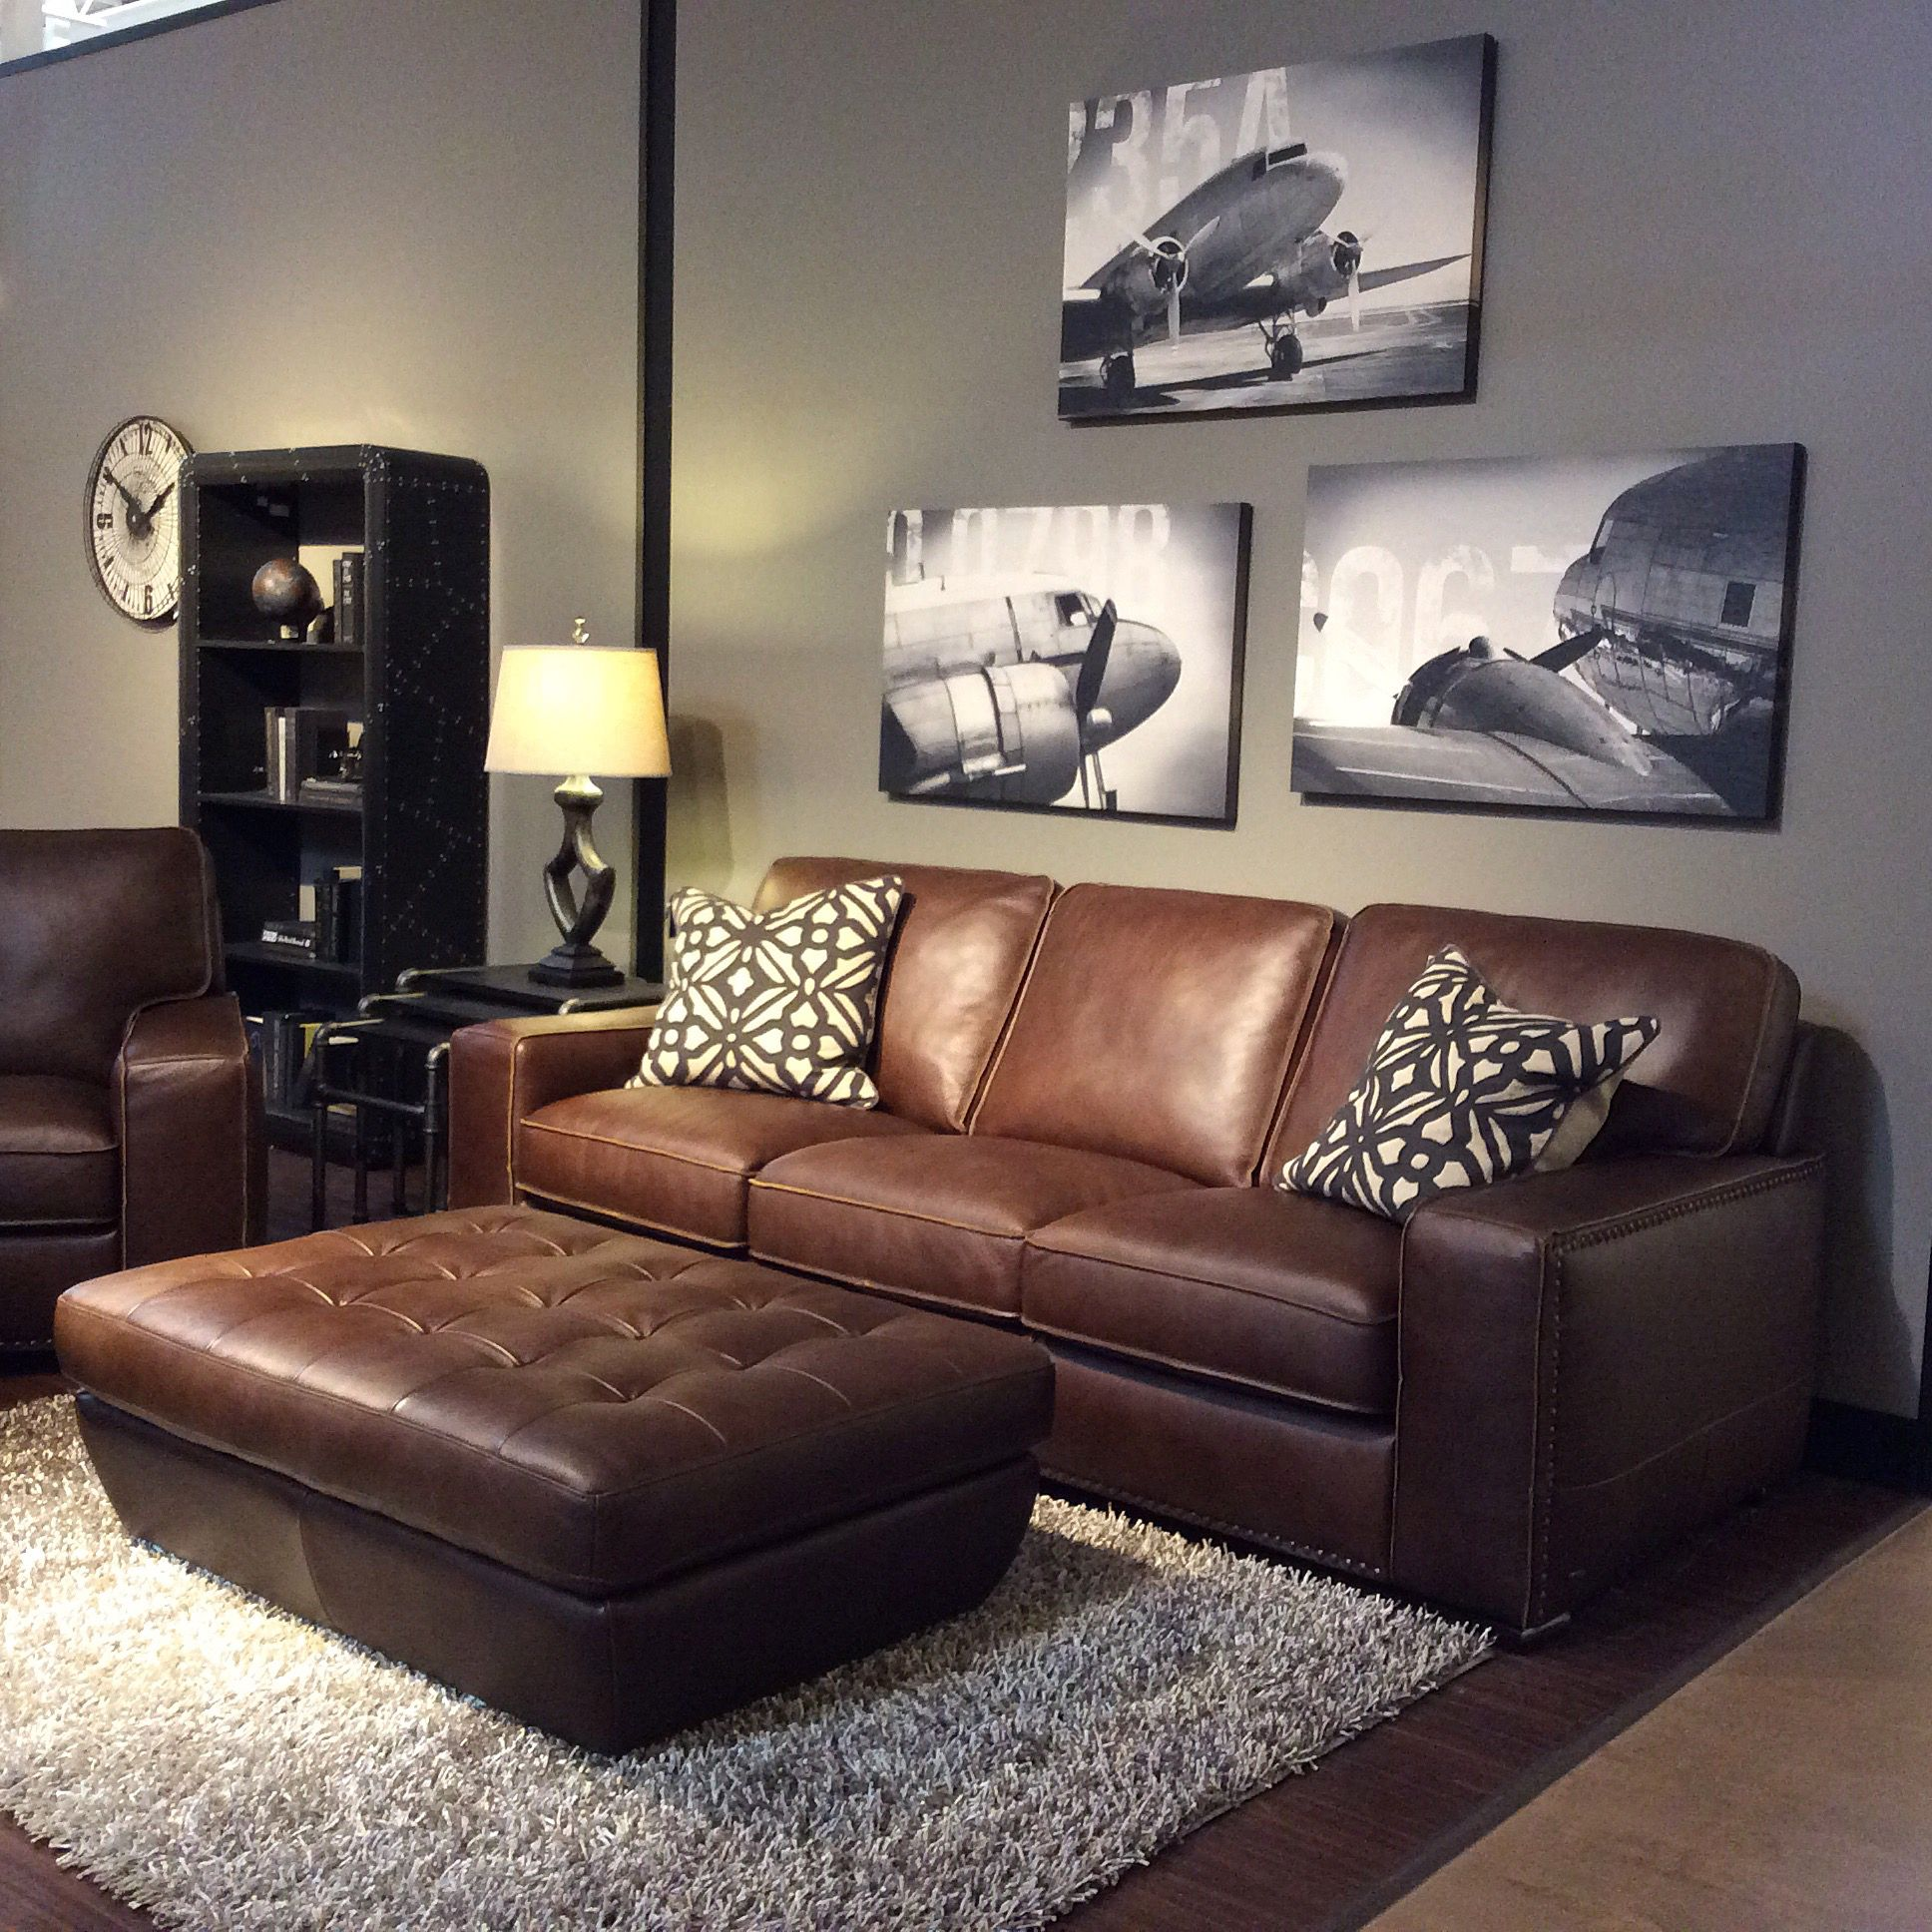 brown leather sofa grey walls surefit slipcovers for sleeper family room with warm gray black and white art